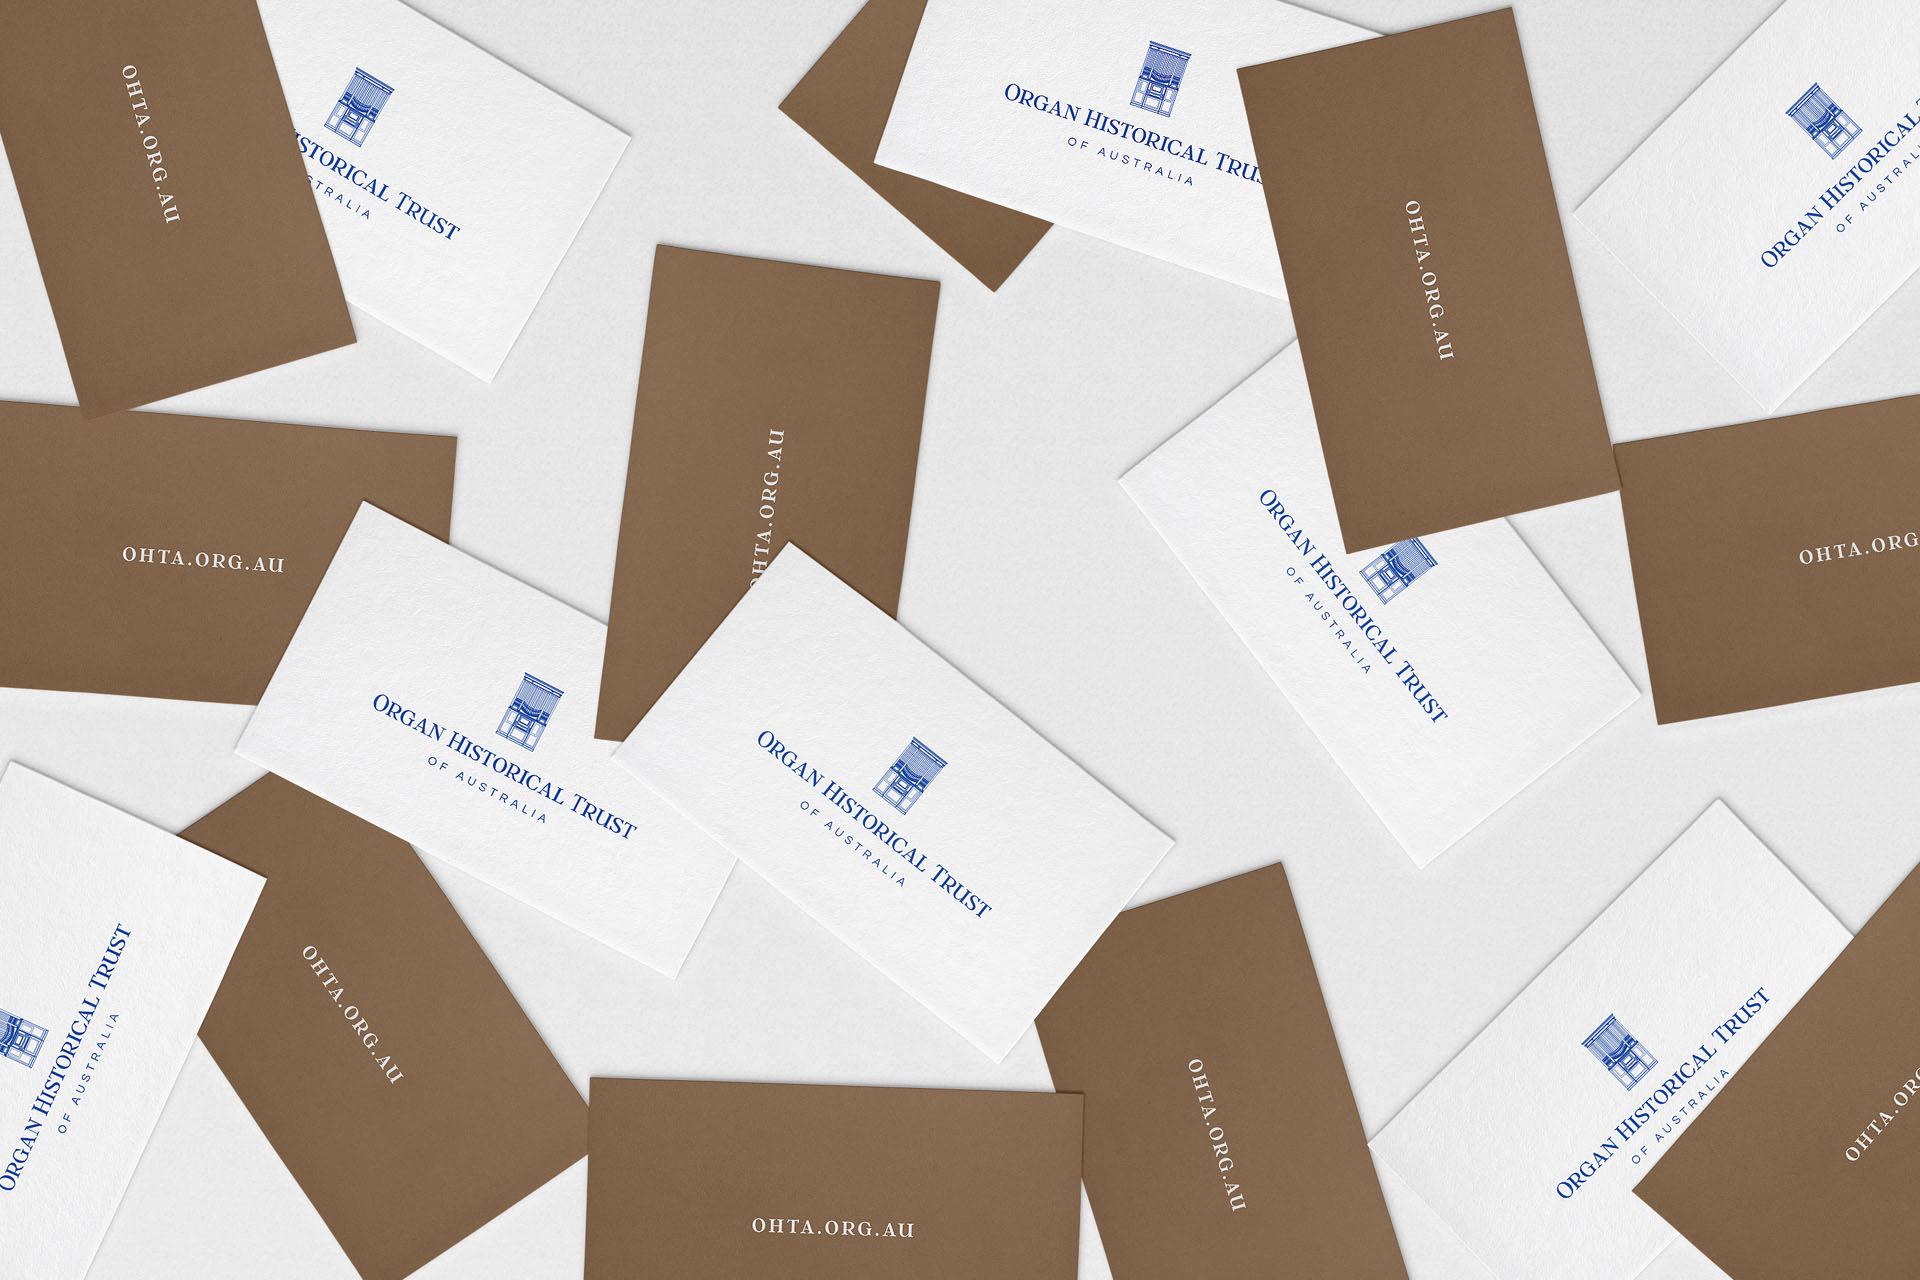 Organ Historical Trust of Australia (OHTA) branding by Leysa Flores